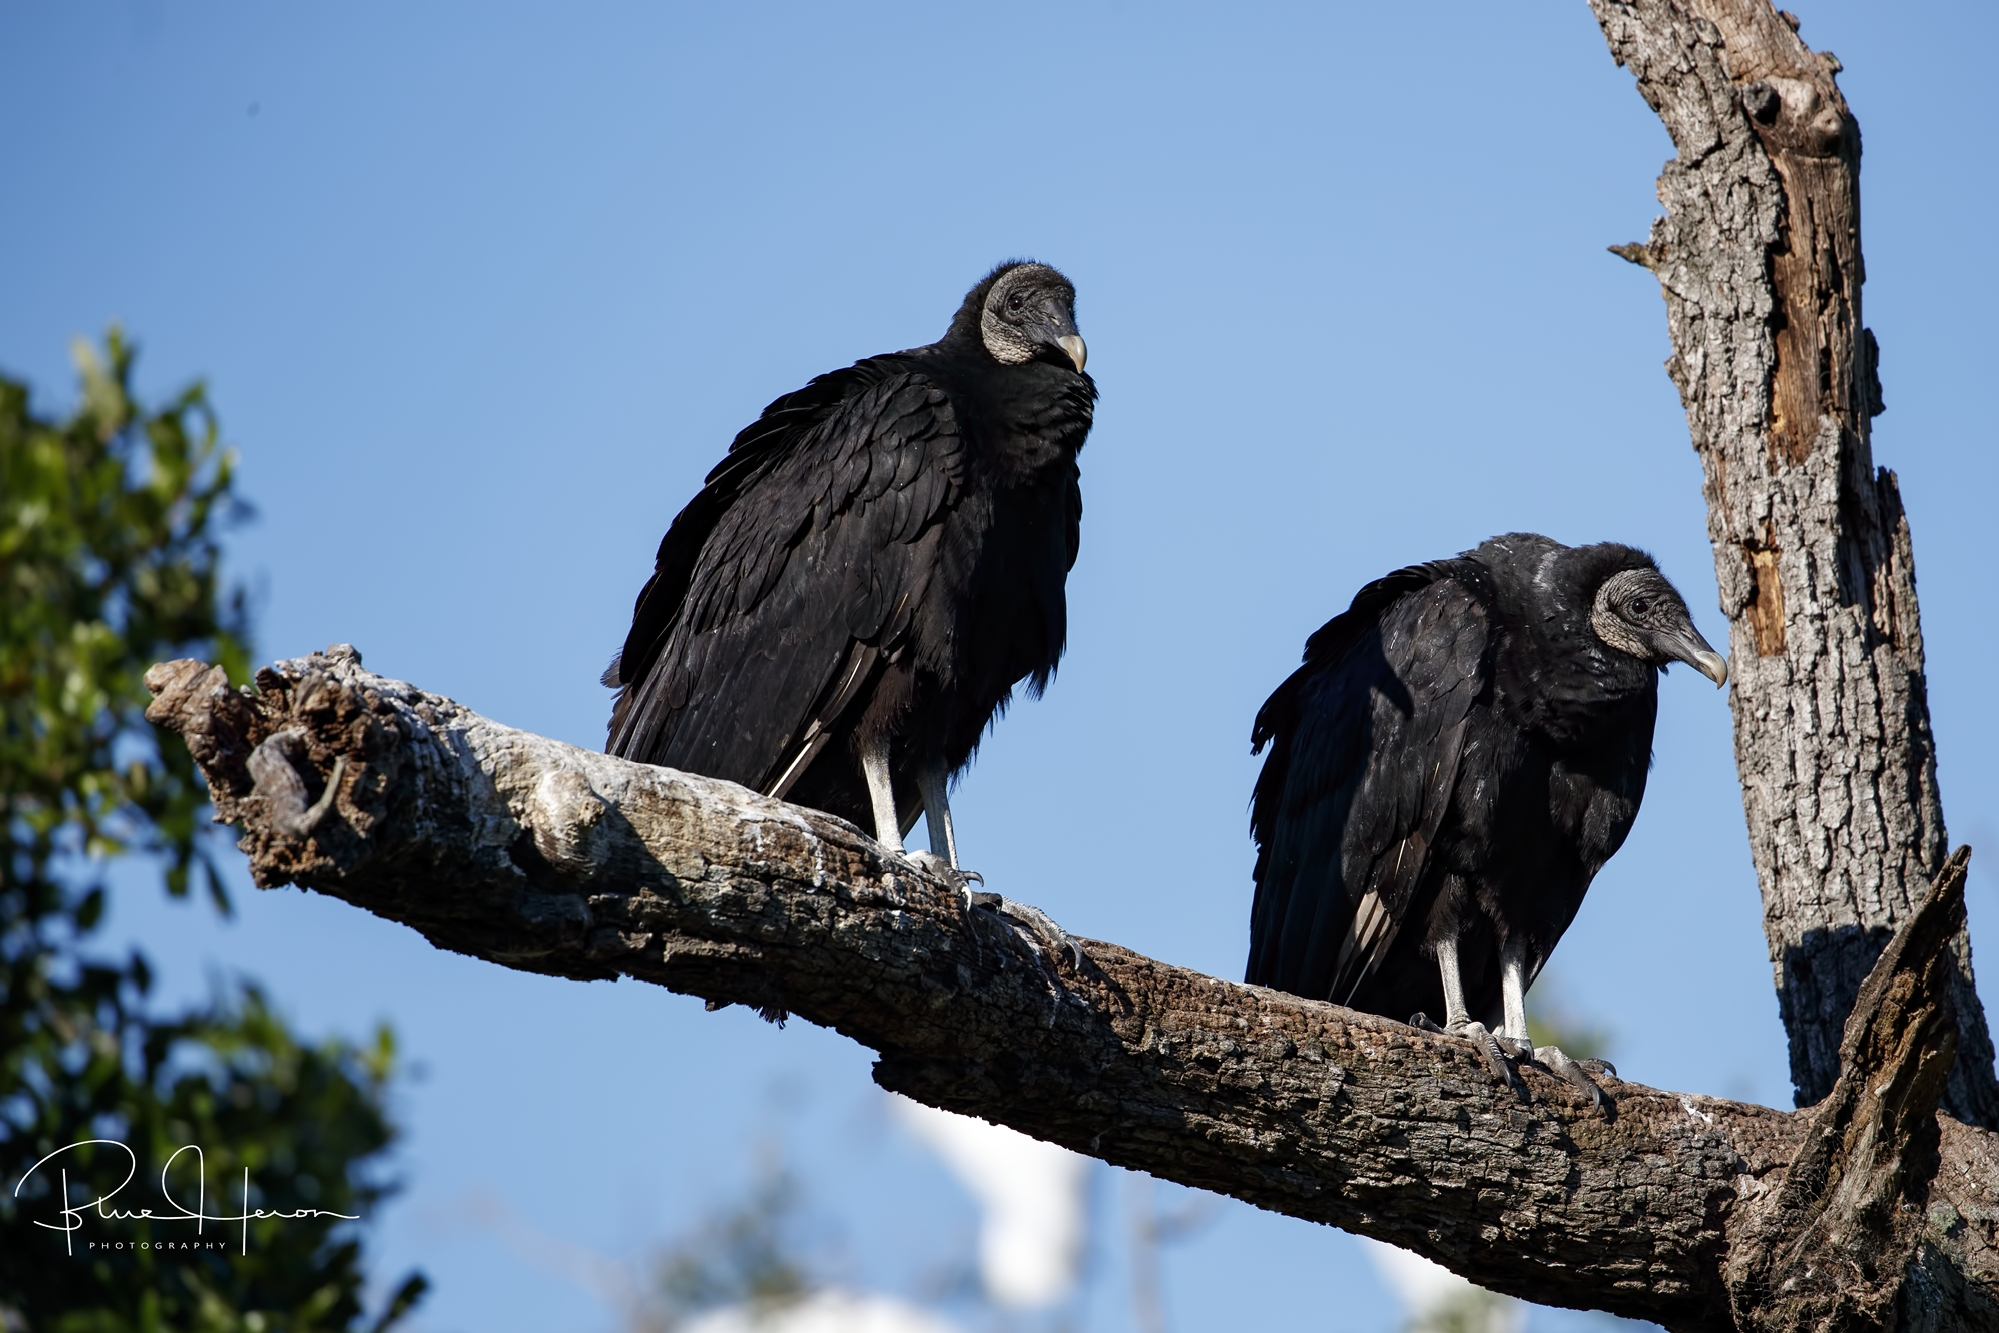 Black Vultures have replaced some of the Wood Stork nesting spots.